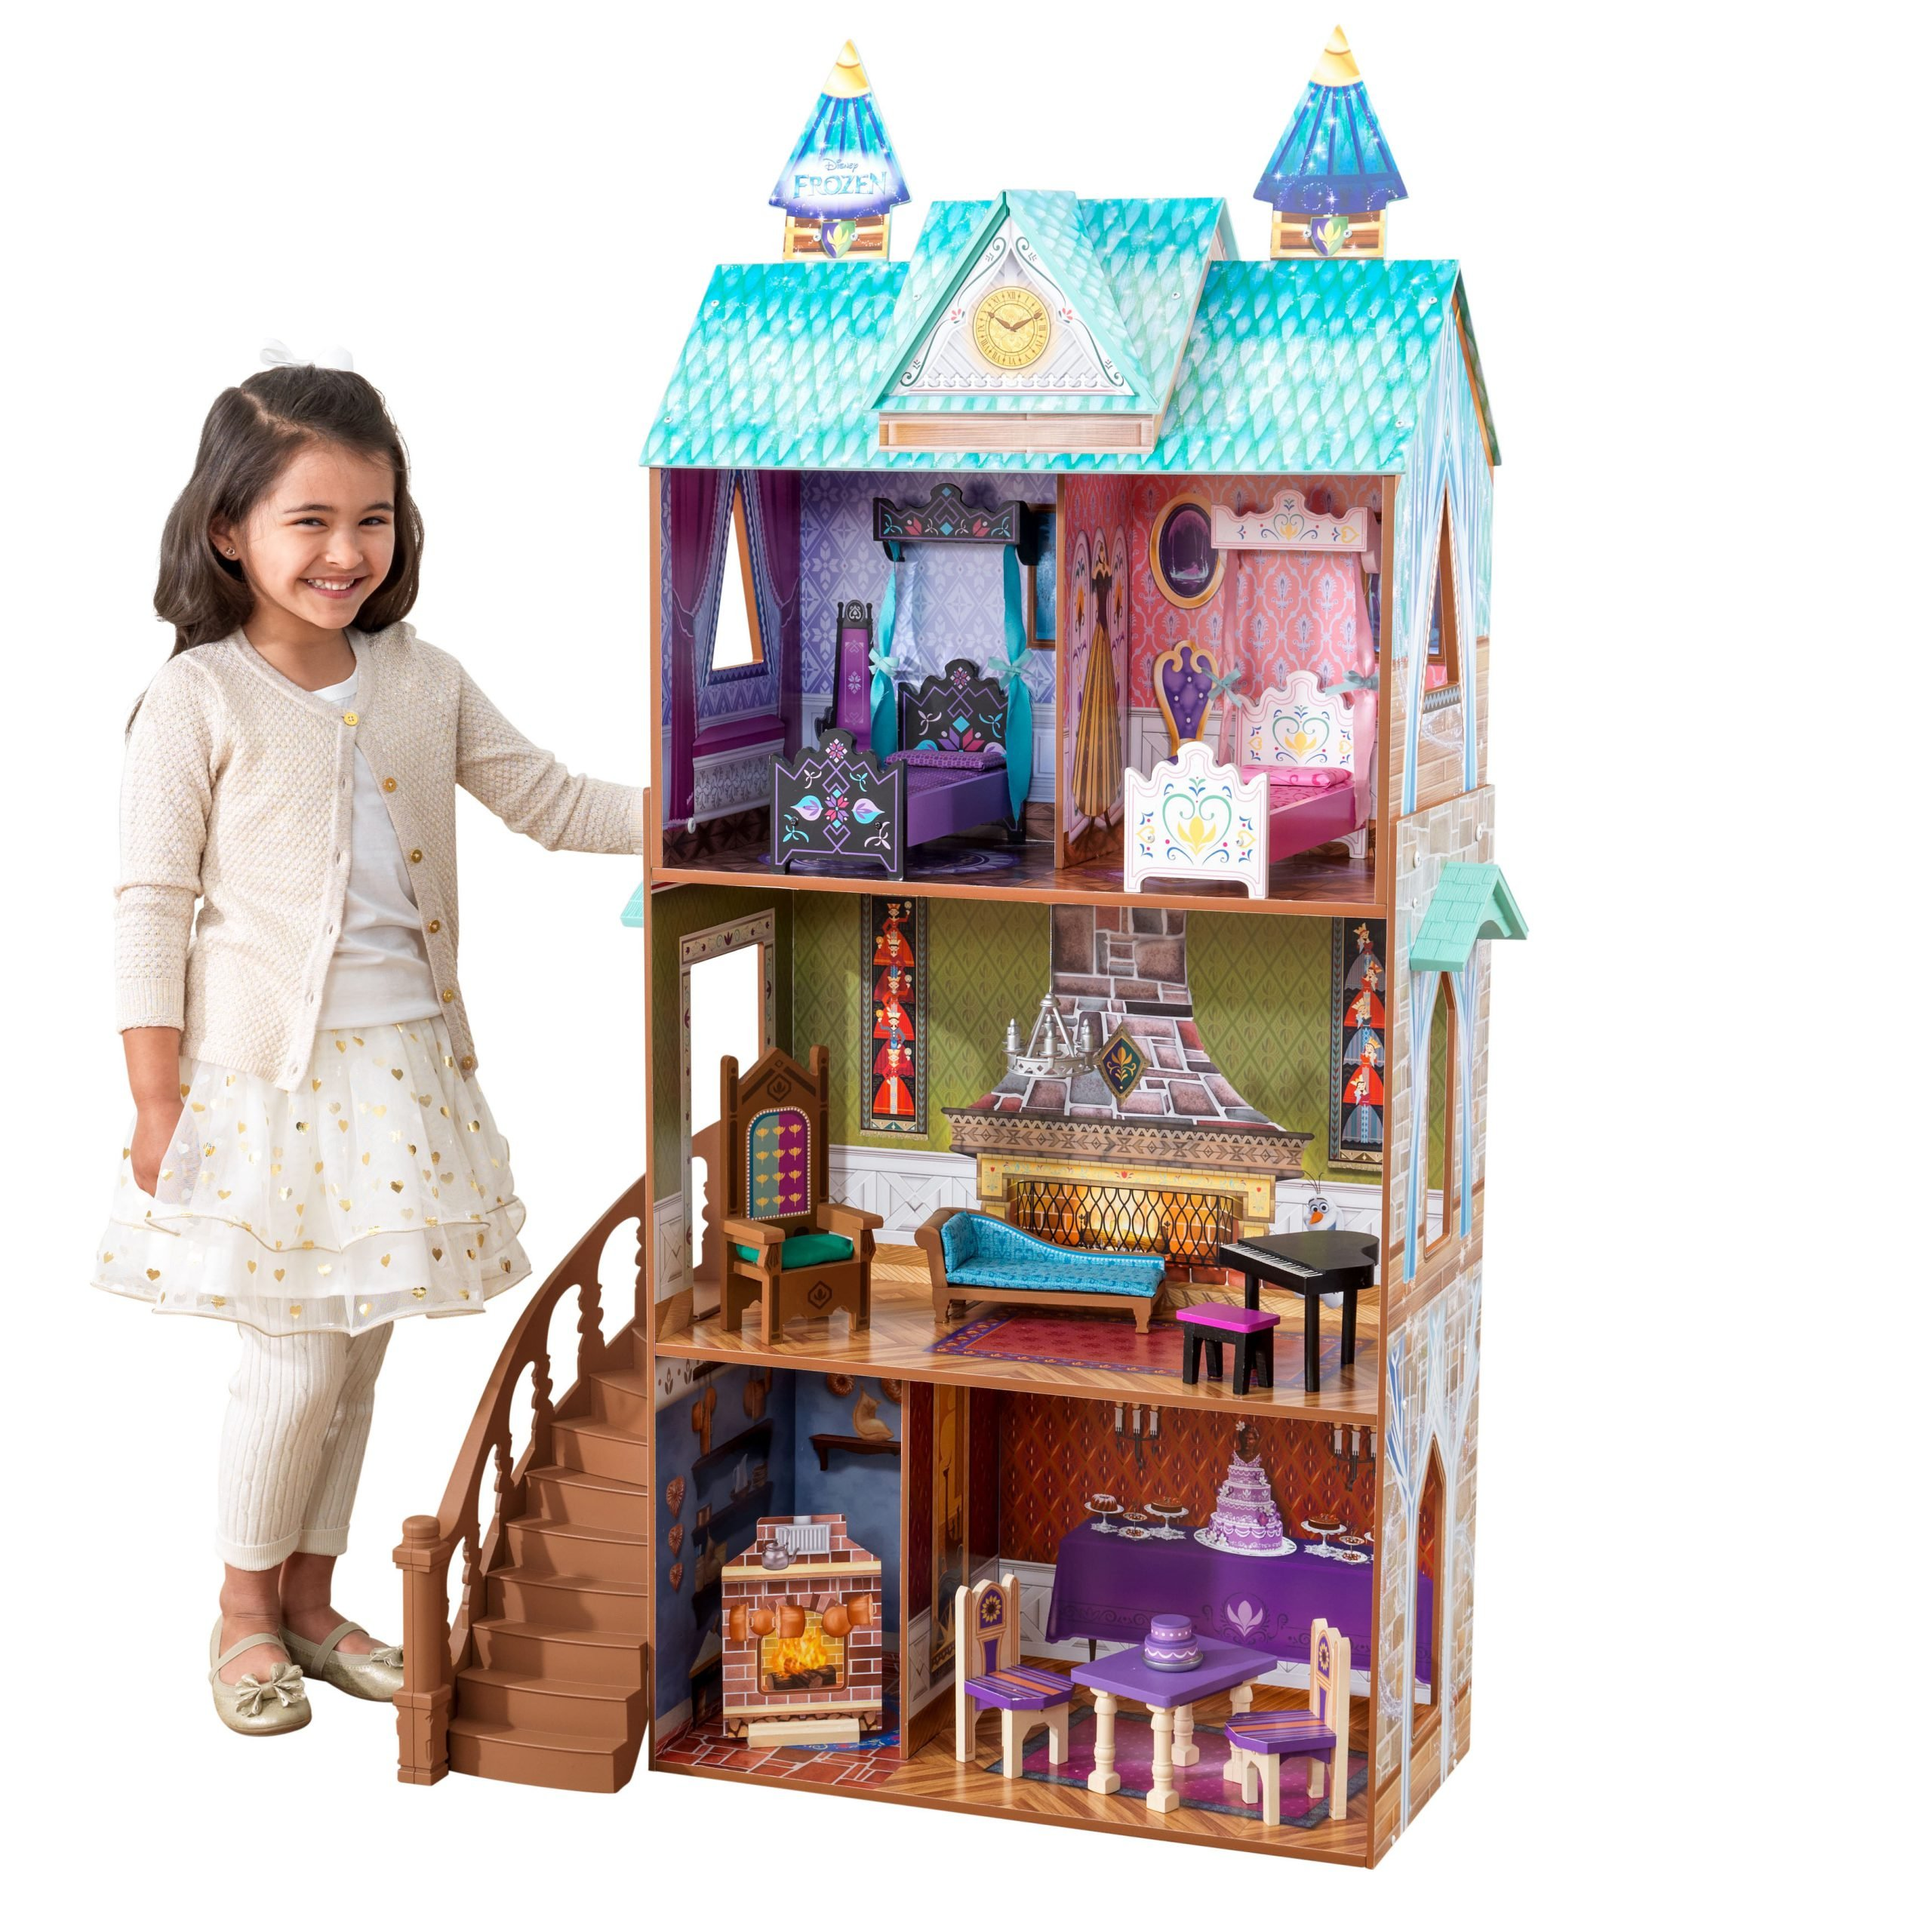 Frozen Arendelle Palace Dollhouse